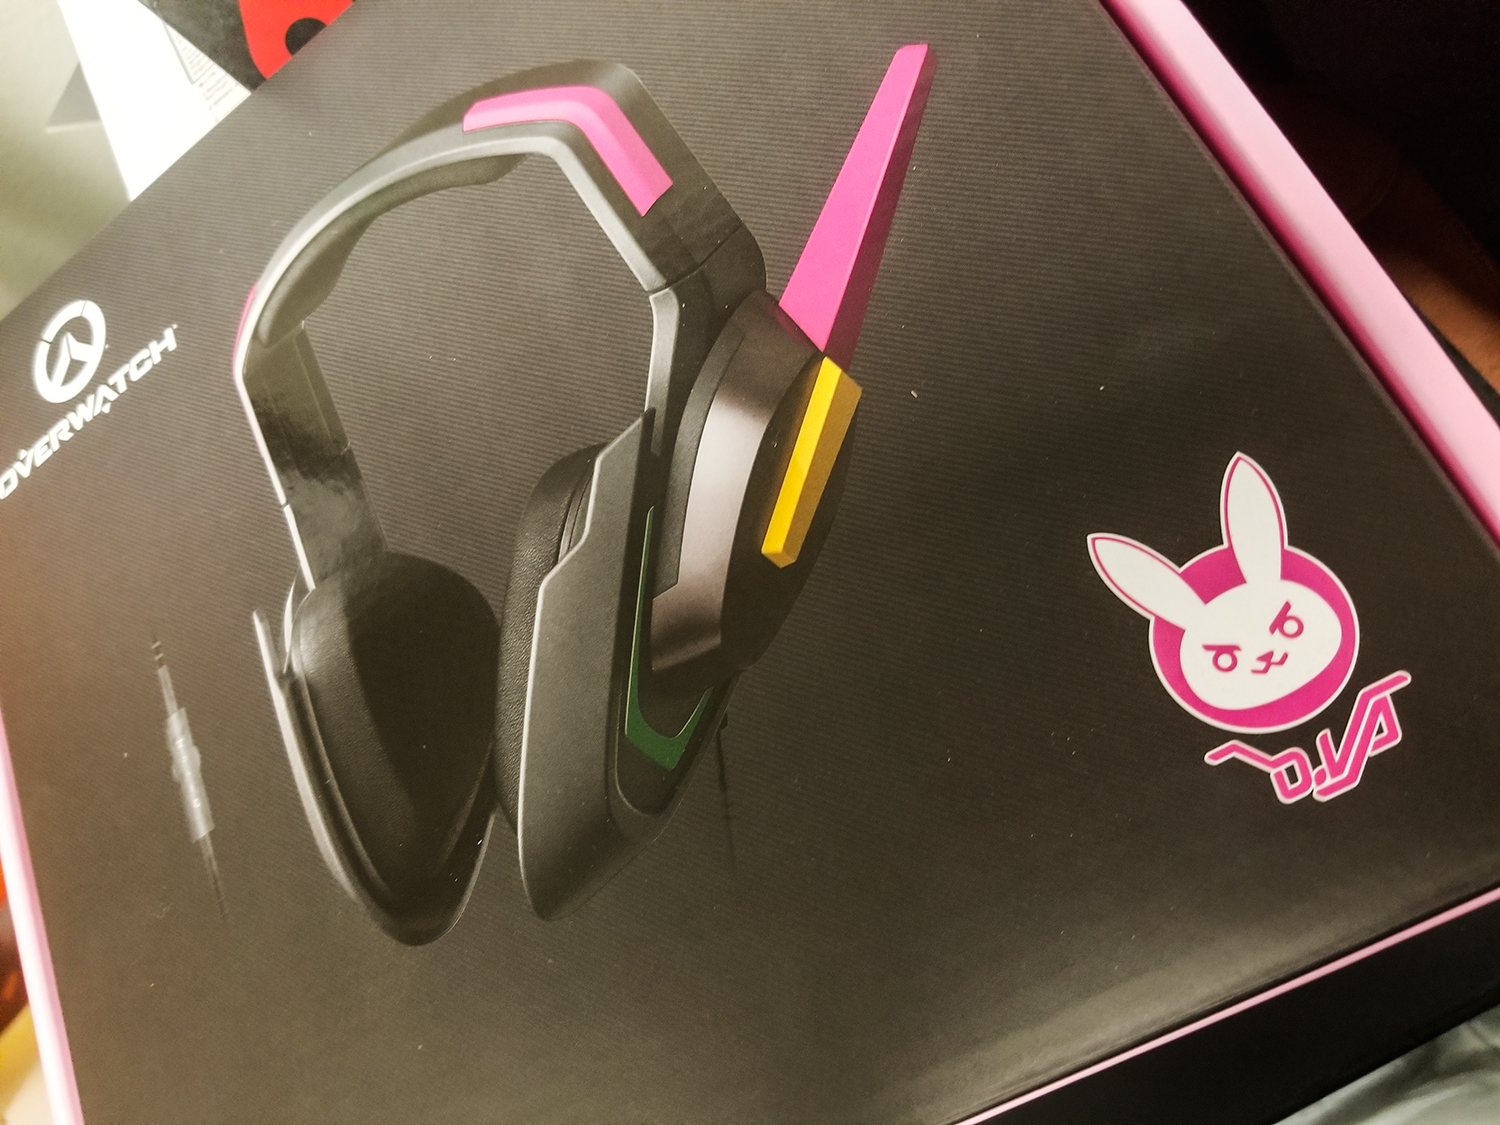 Packaging for the headset